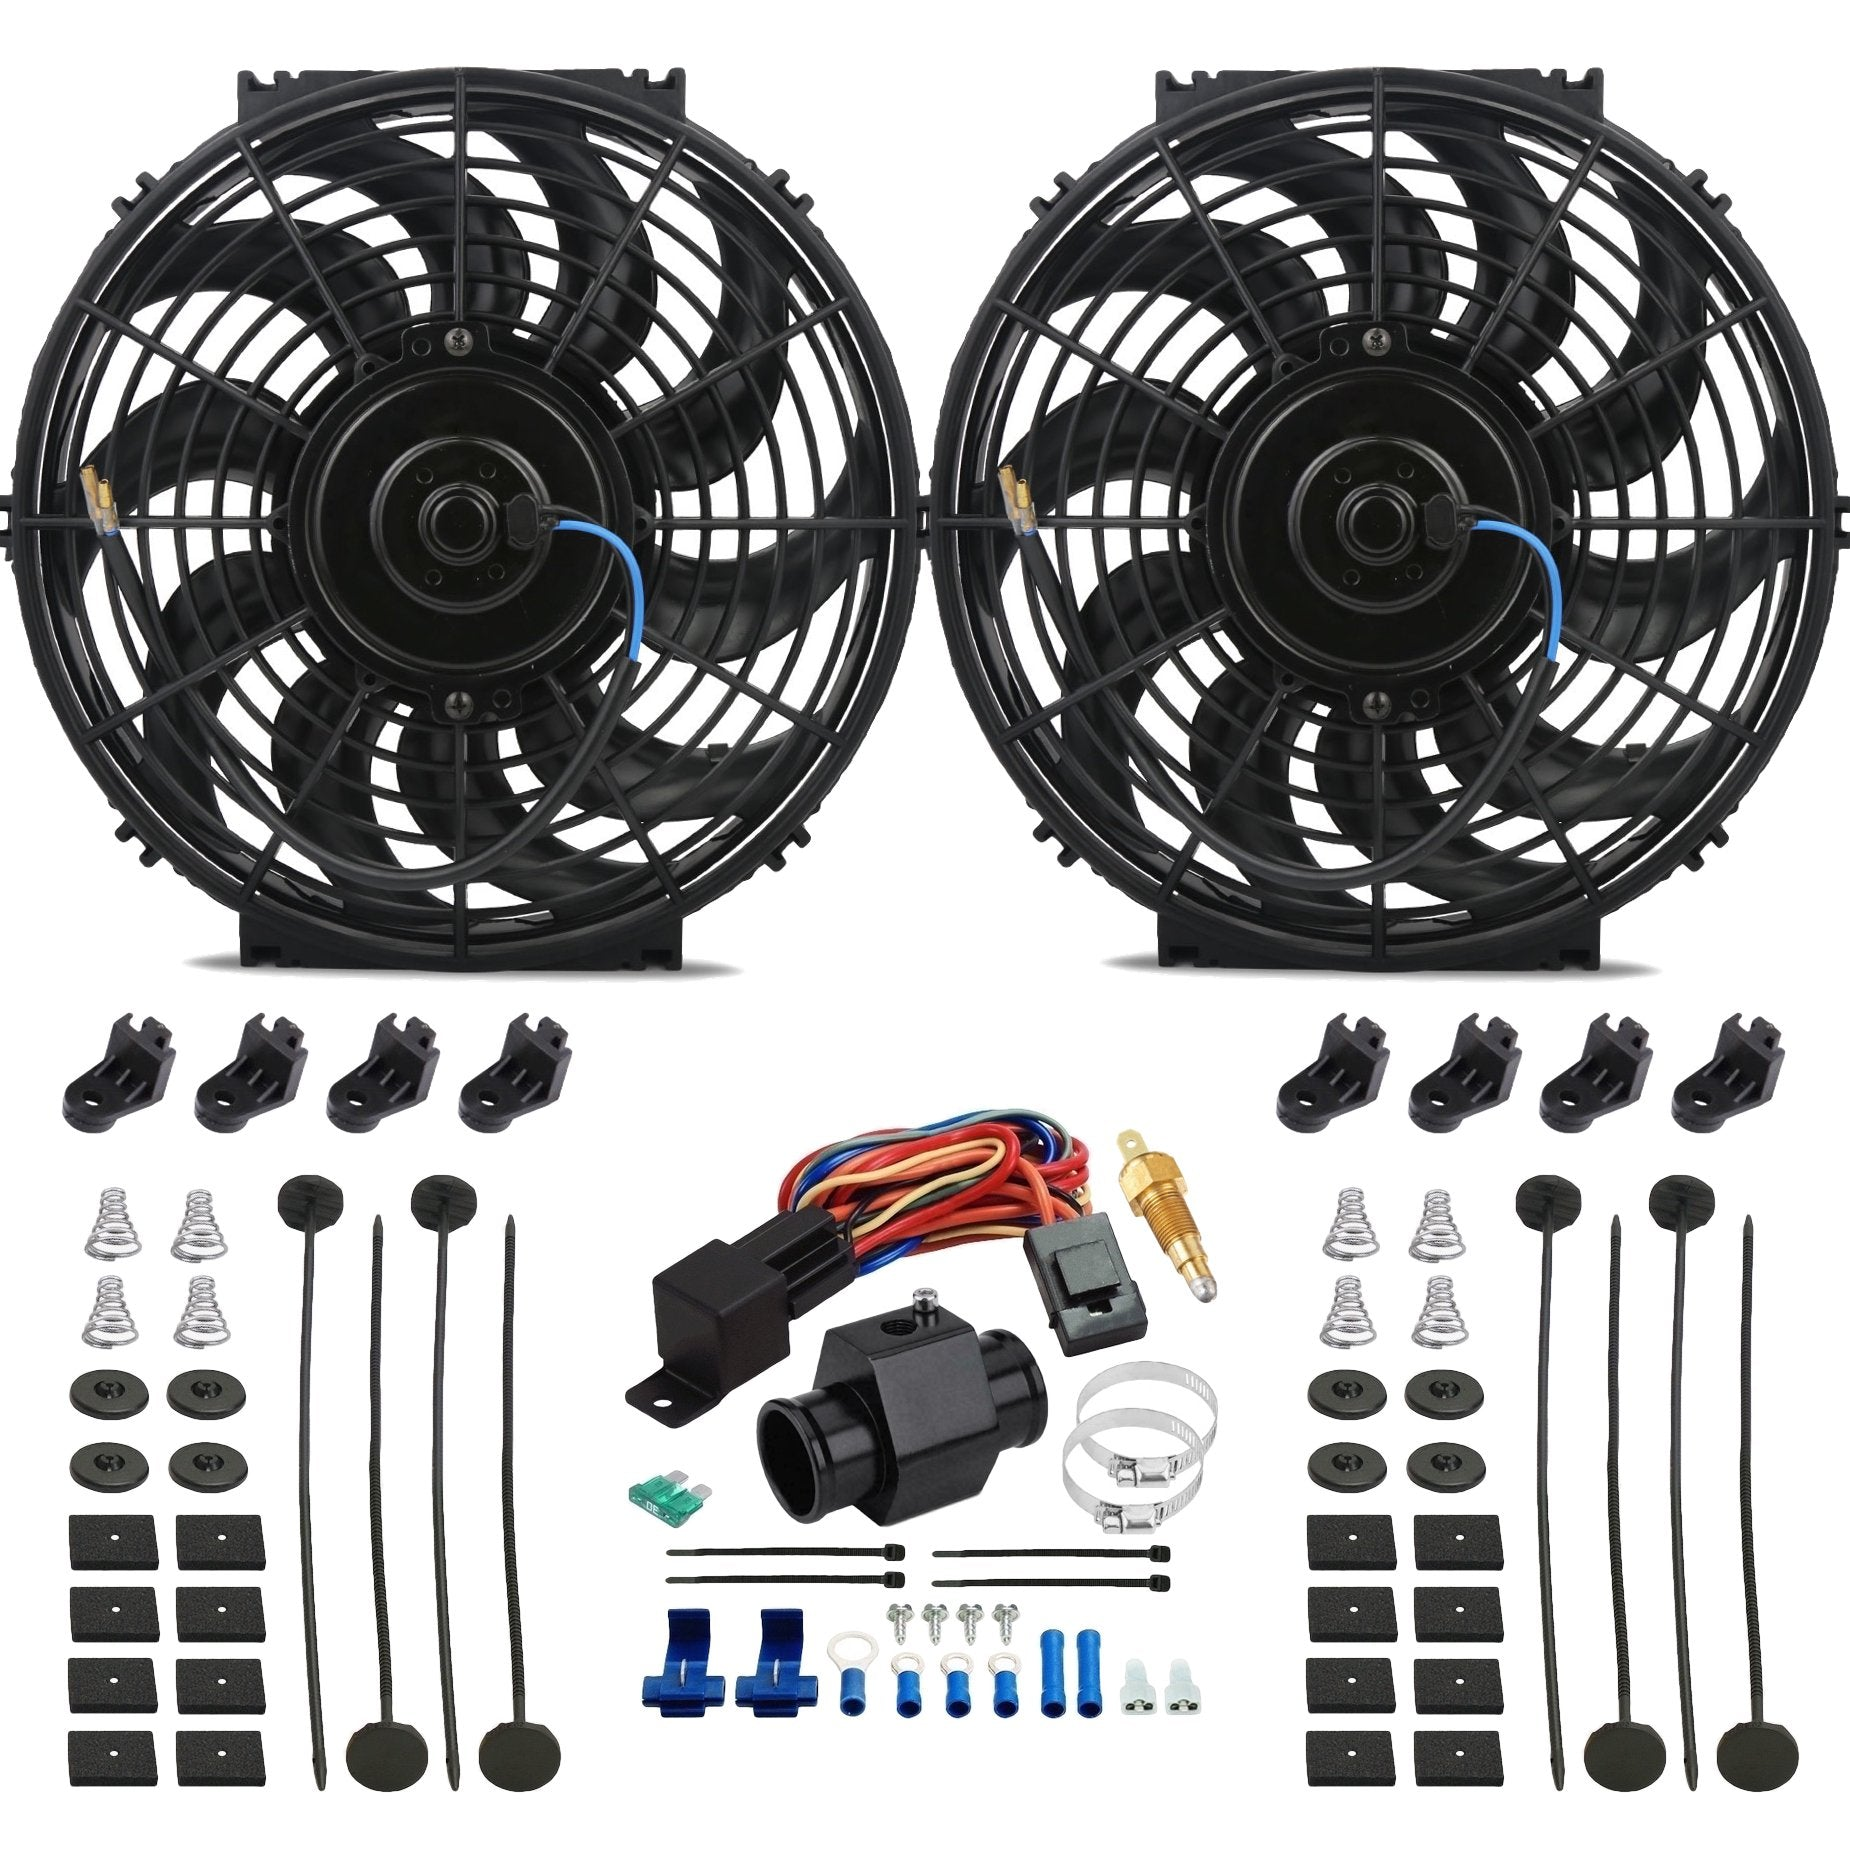 "Dual 12"" Inch Electric Cooling Fans Radiator Hose In-Line Ground Thermostat Temp Switch Wiring Kit-Dual Electric Fans-American Volt-26mm-140'F On - 125'F Off-American Volt"